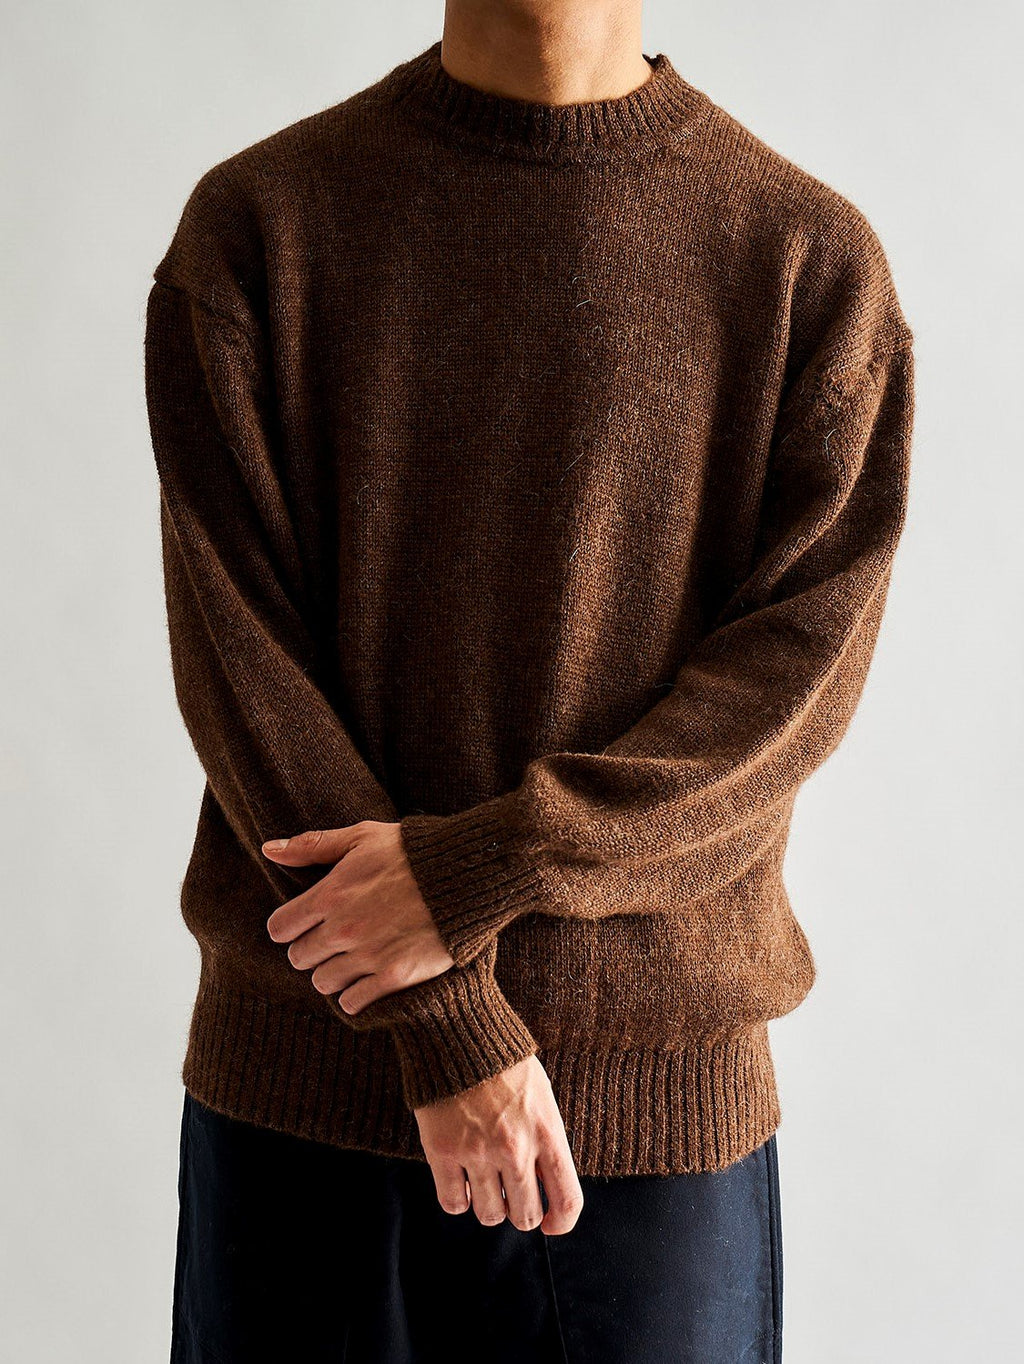 Baby Alpaca Crewneck Knit - Walnut